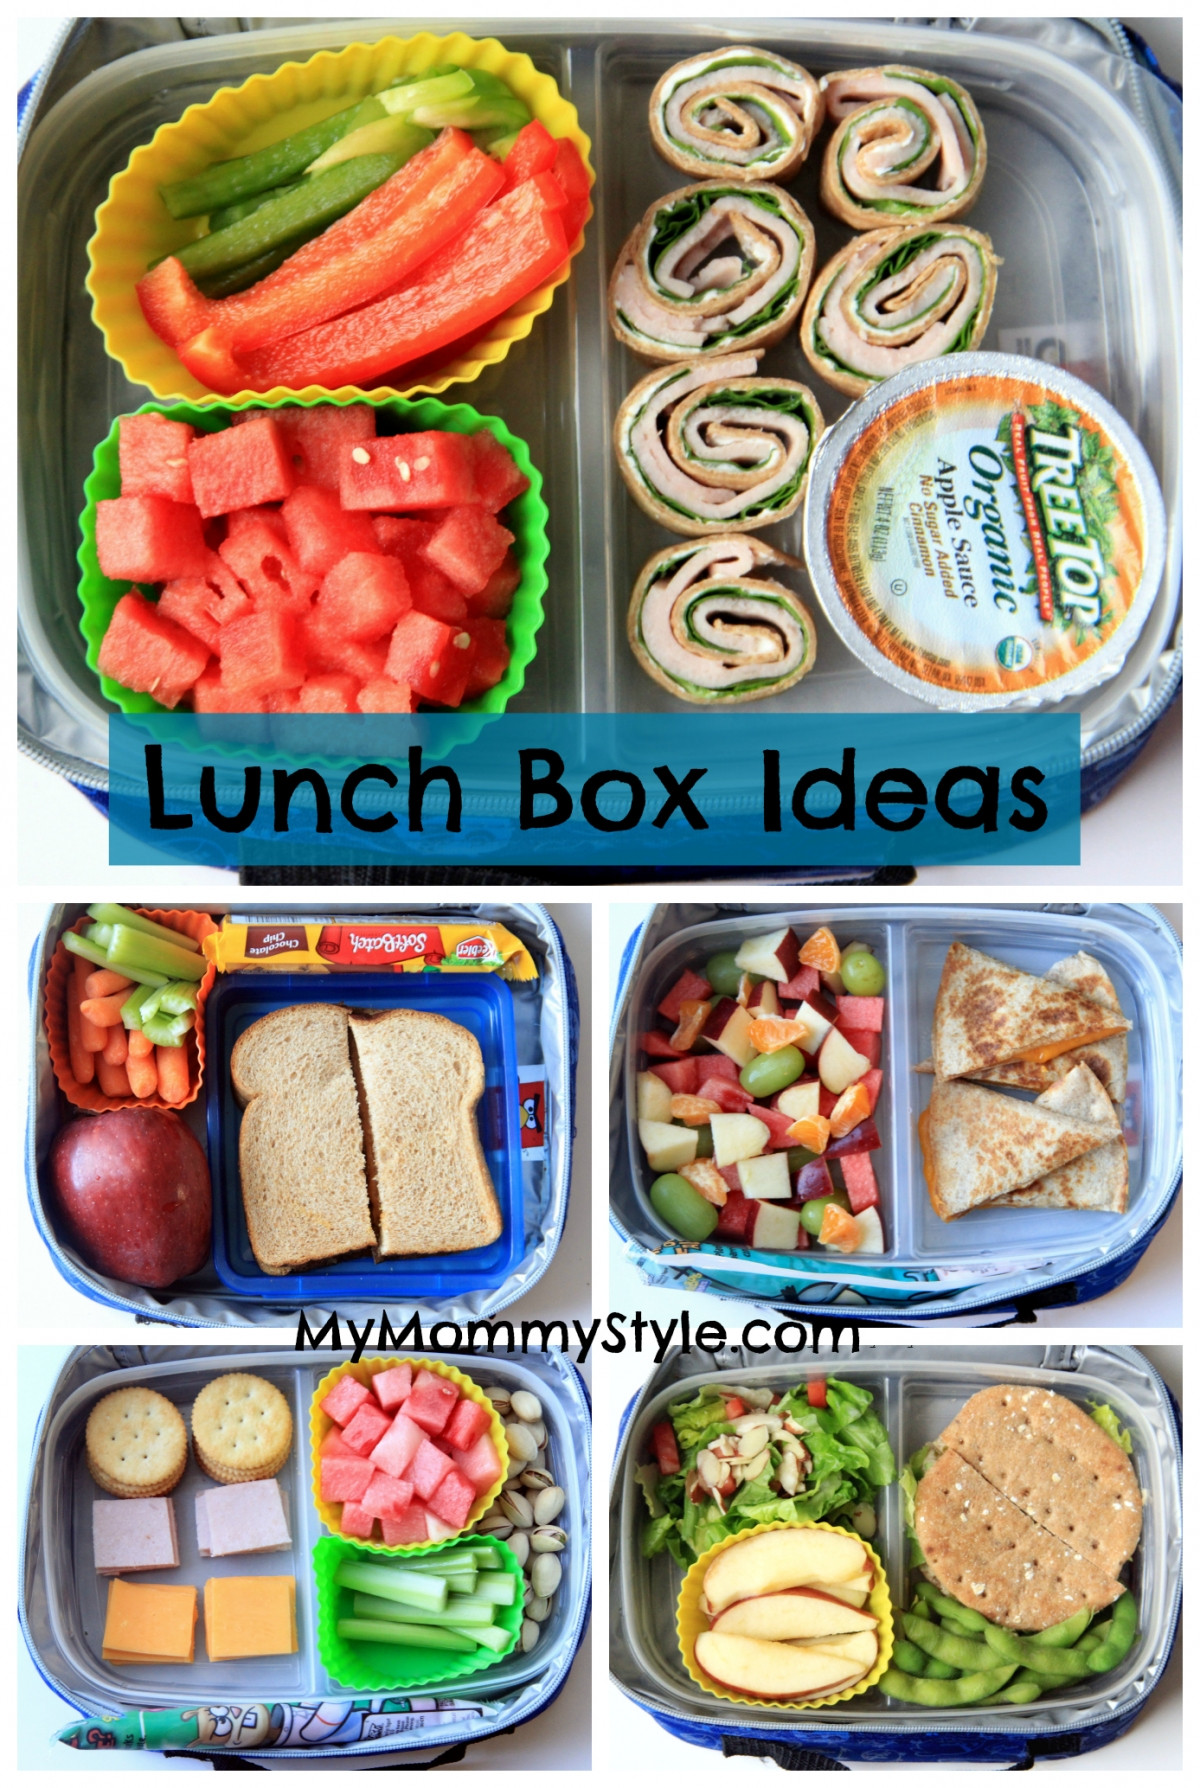 Healthy School Lunches For Kids  Healthy Lunch Box ideas week 2 My Mommy Style